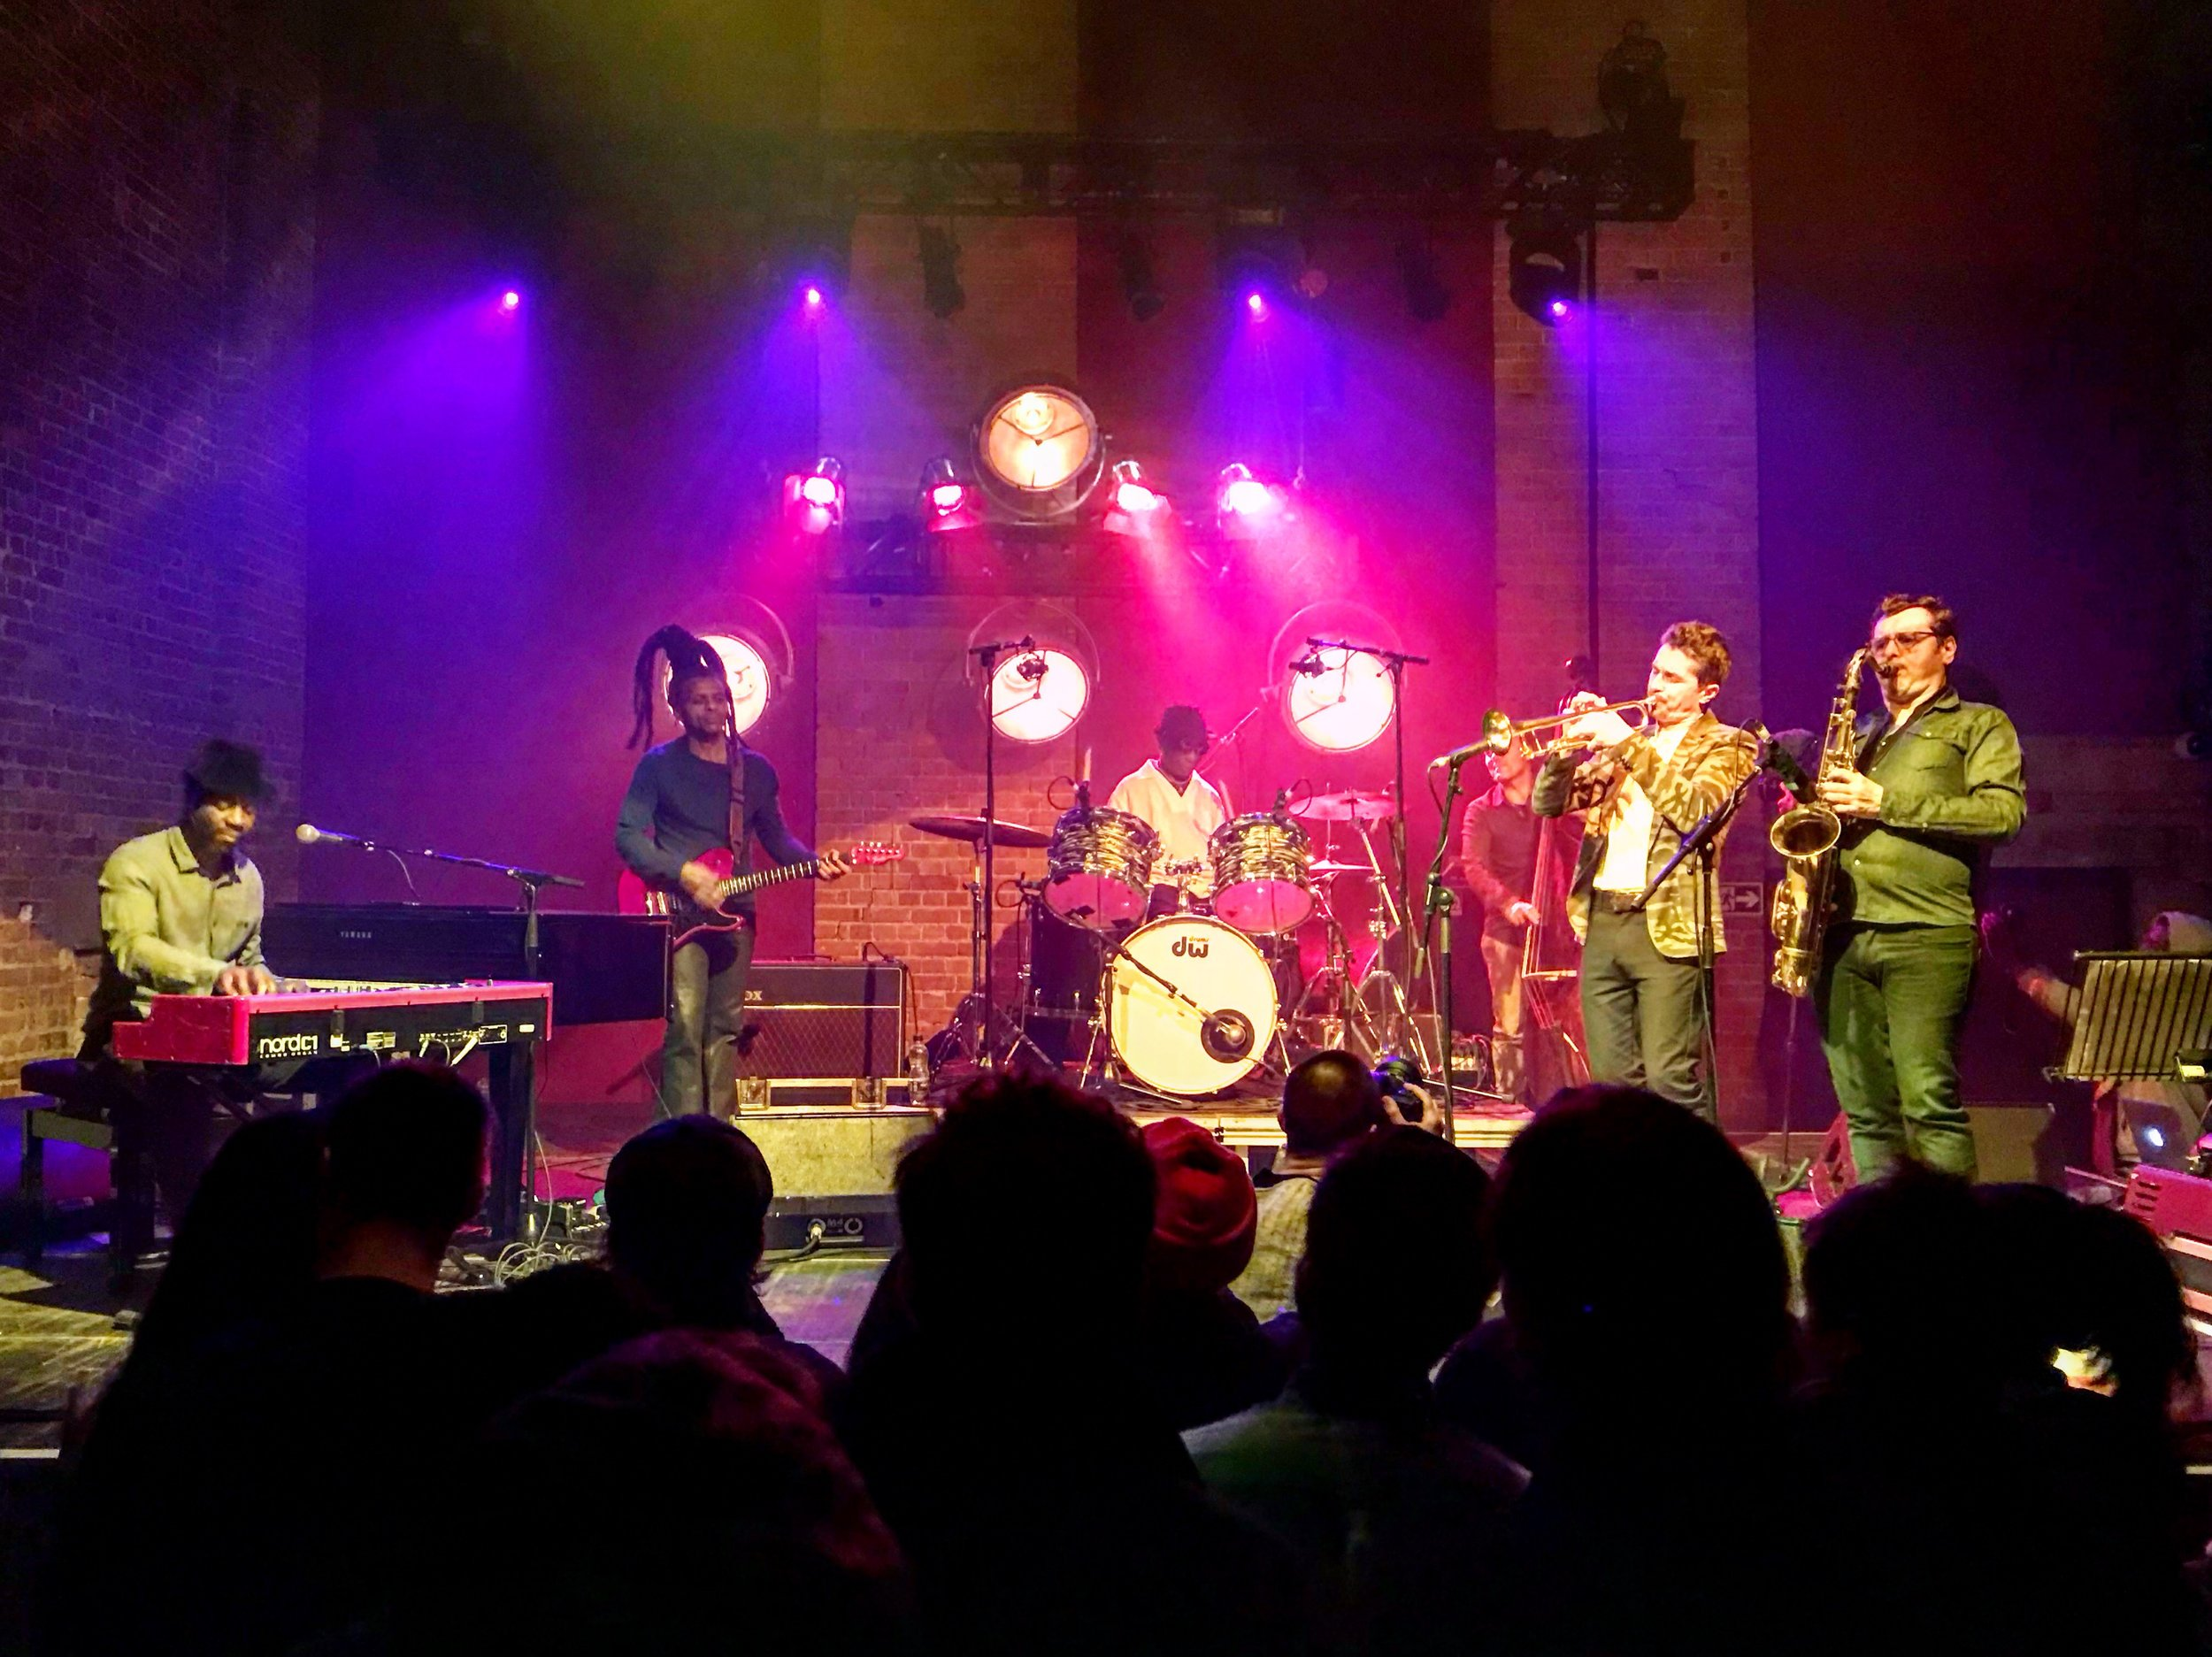 Tony Allen and Band  @ Village Underground 09.02.18  Photo by Sophie Darling